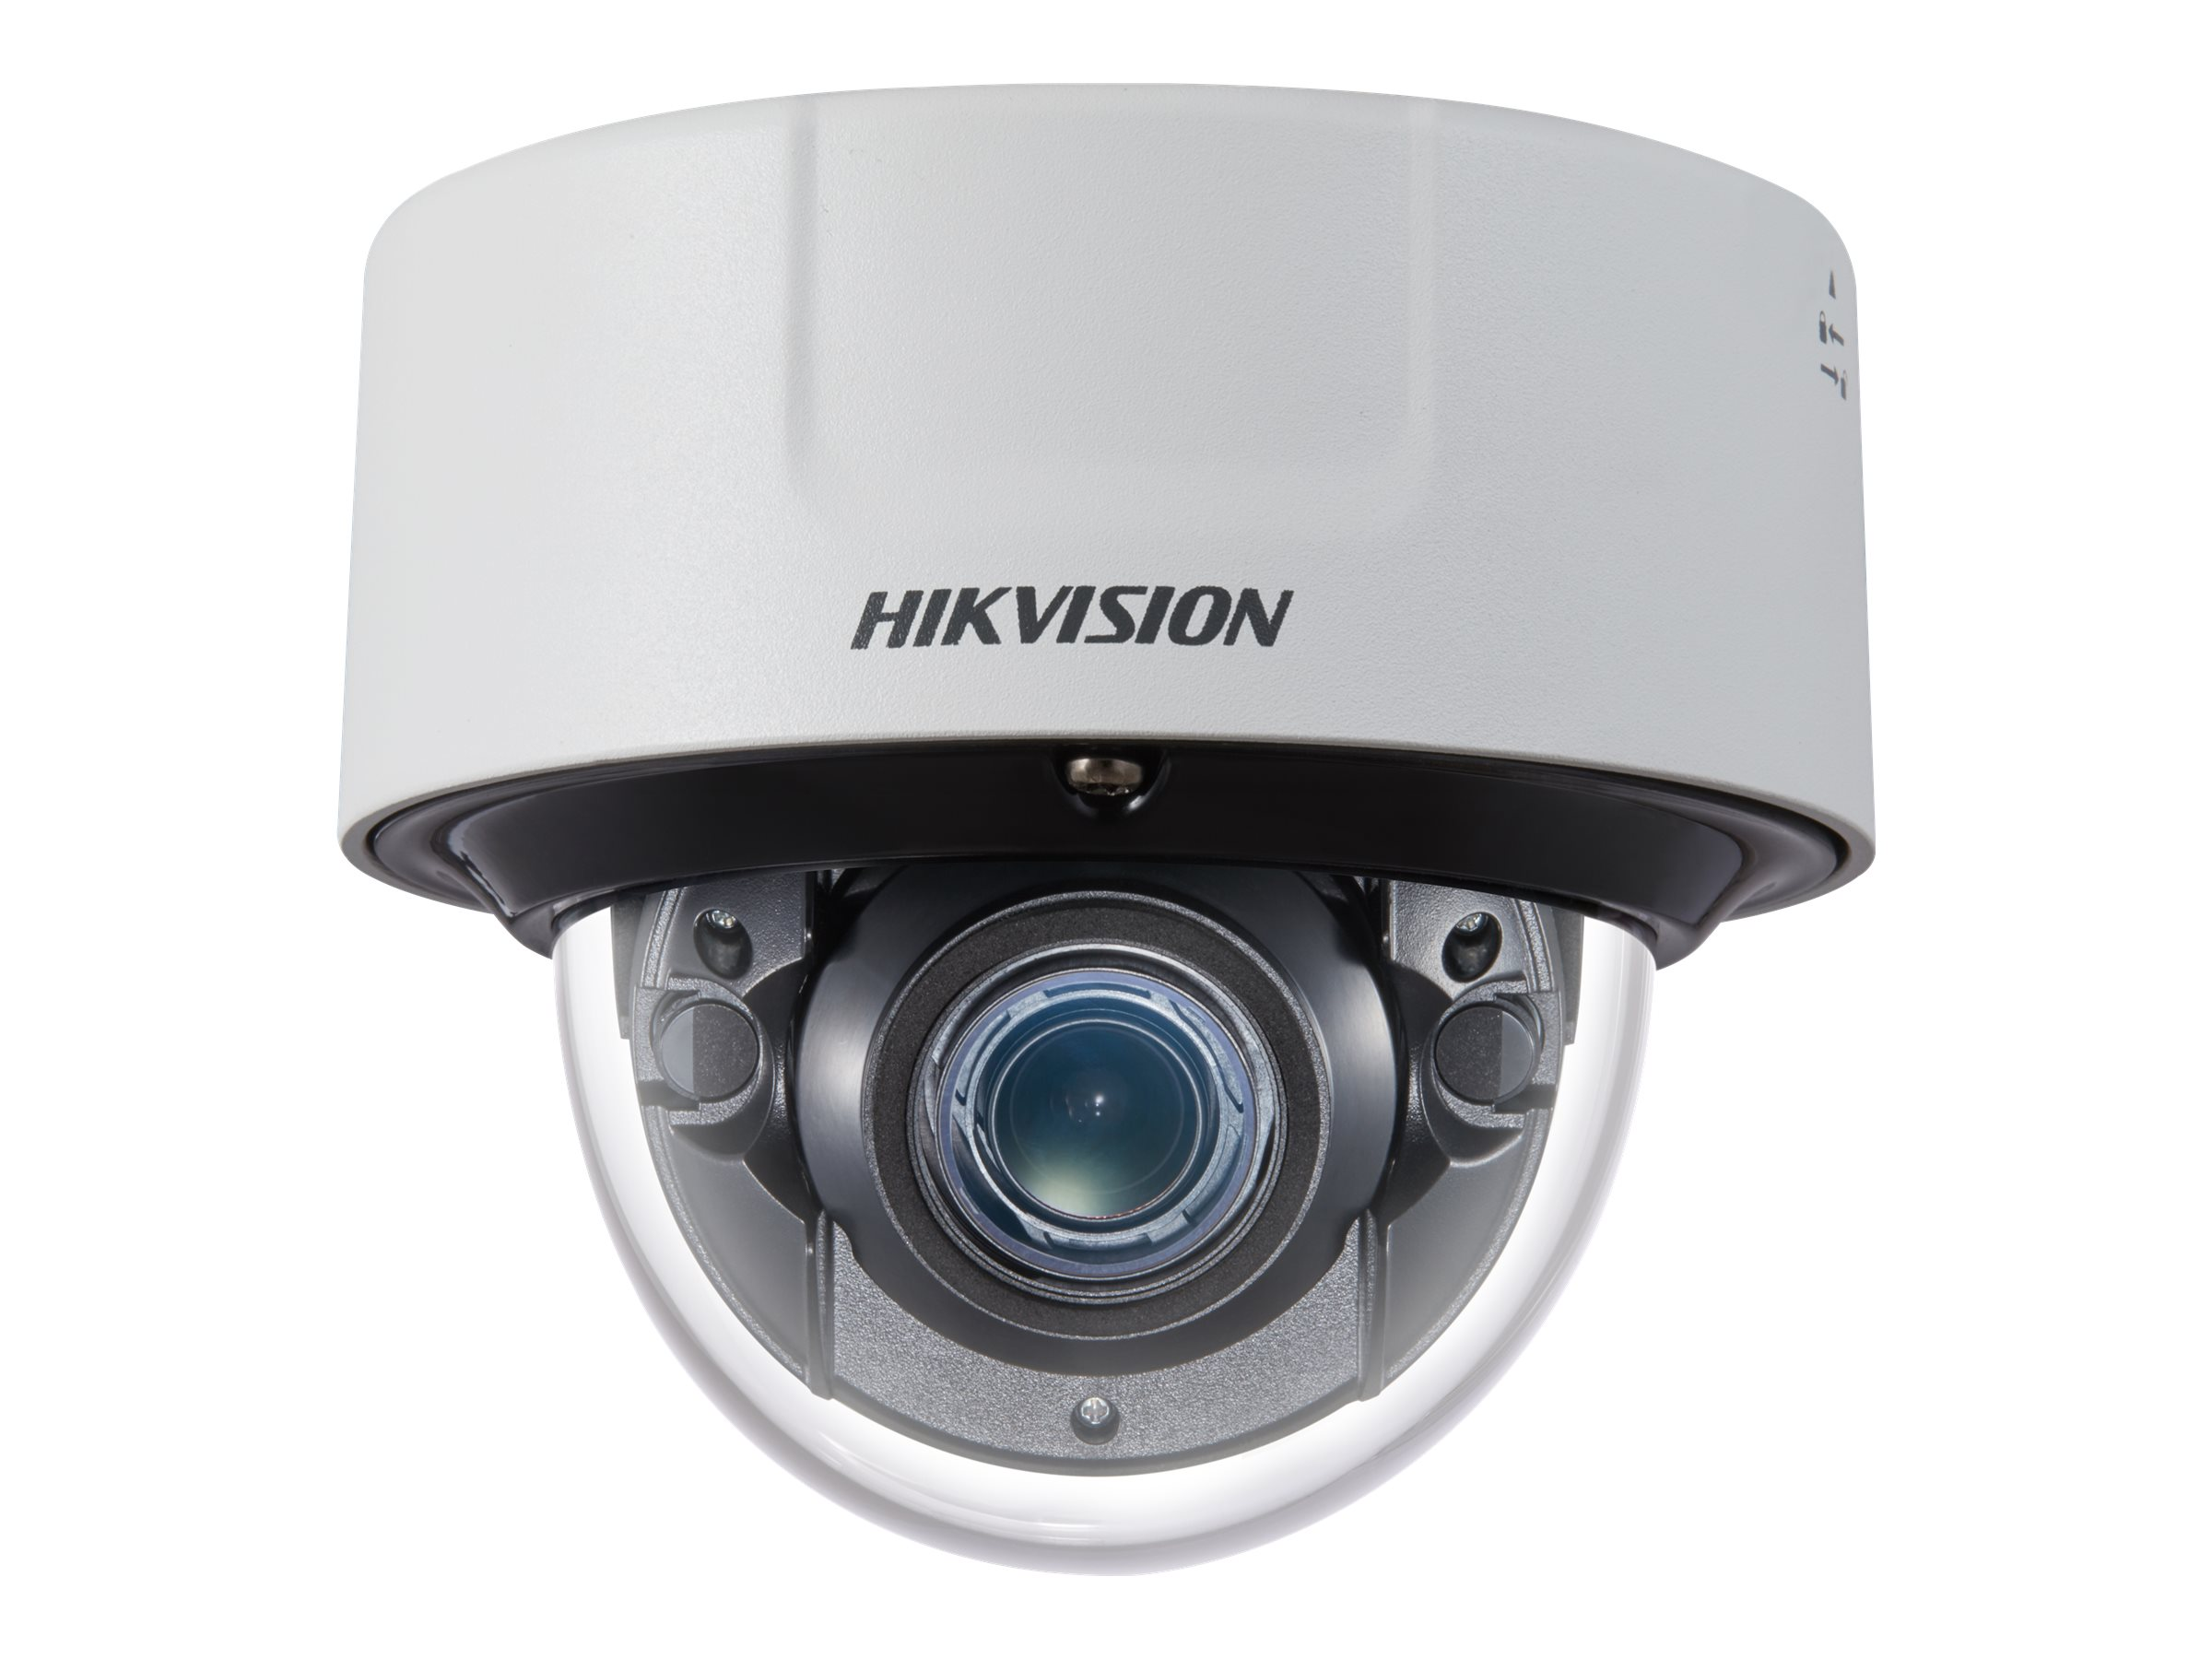 Hikvision DeepinView DS-2CD7185G0-IZS - network surveillance camera